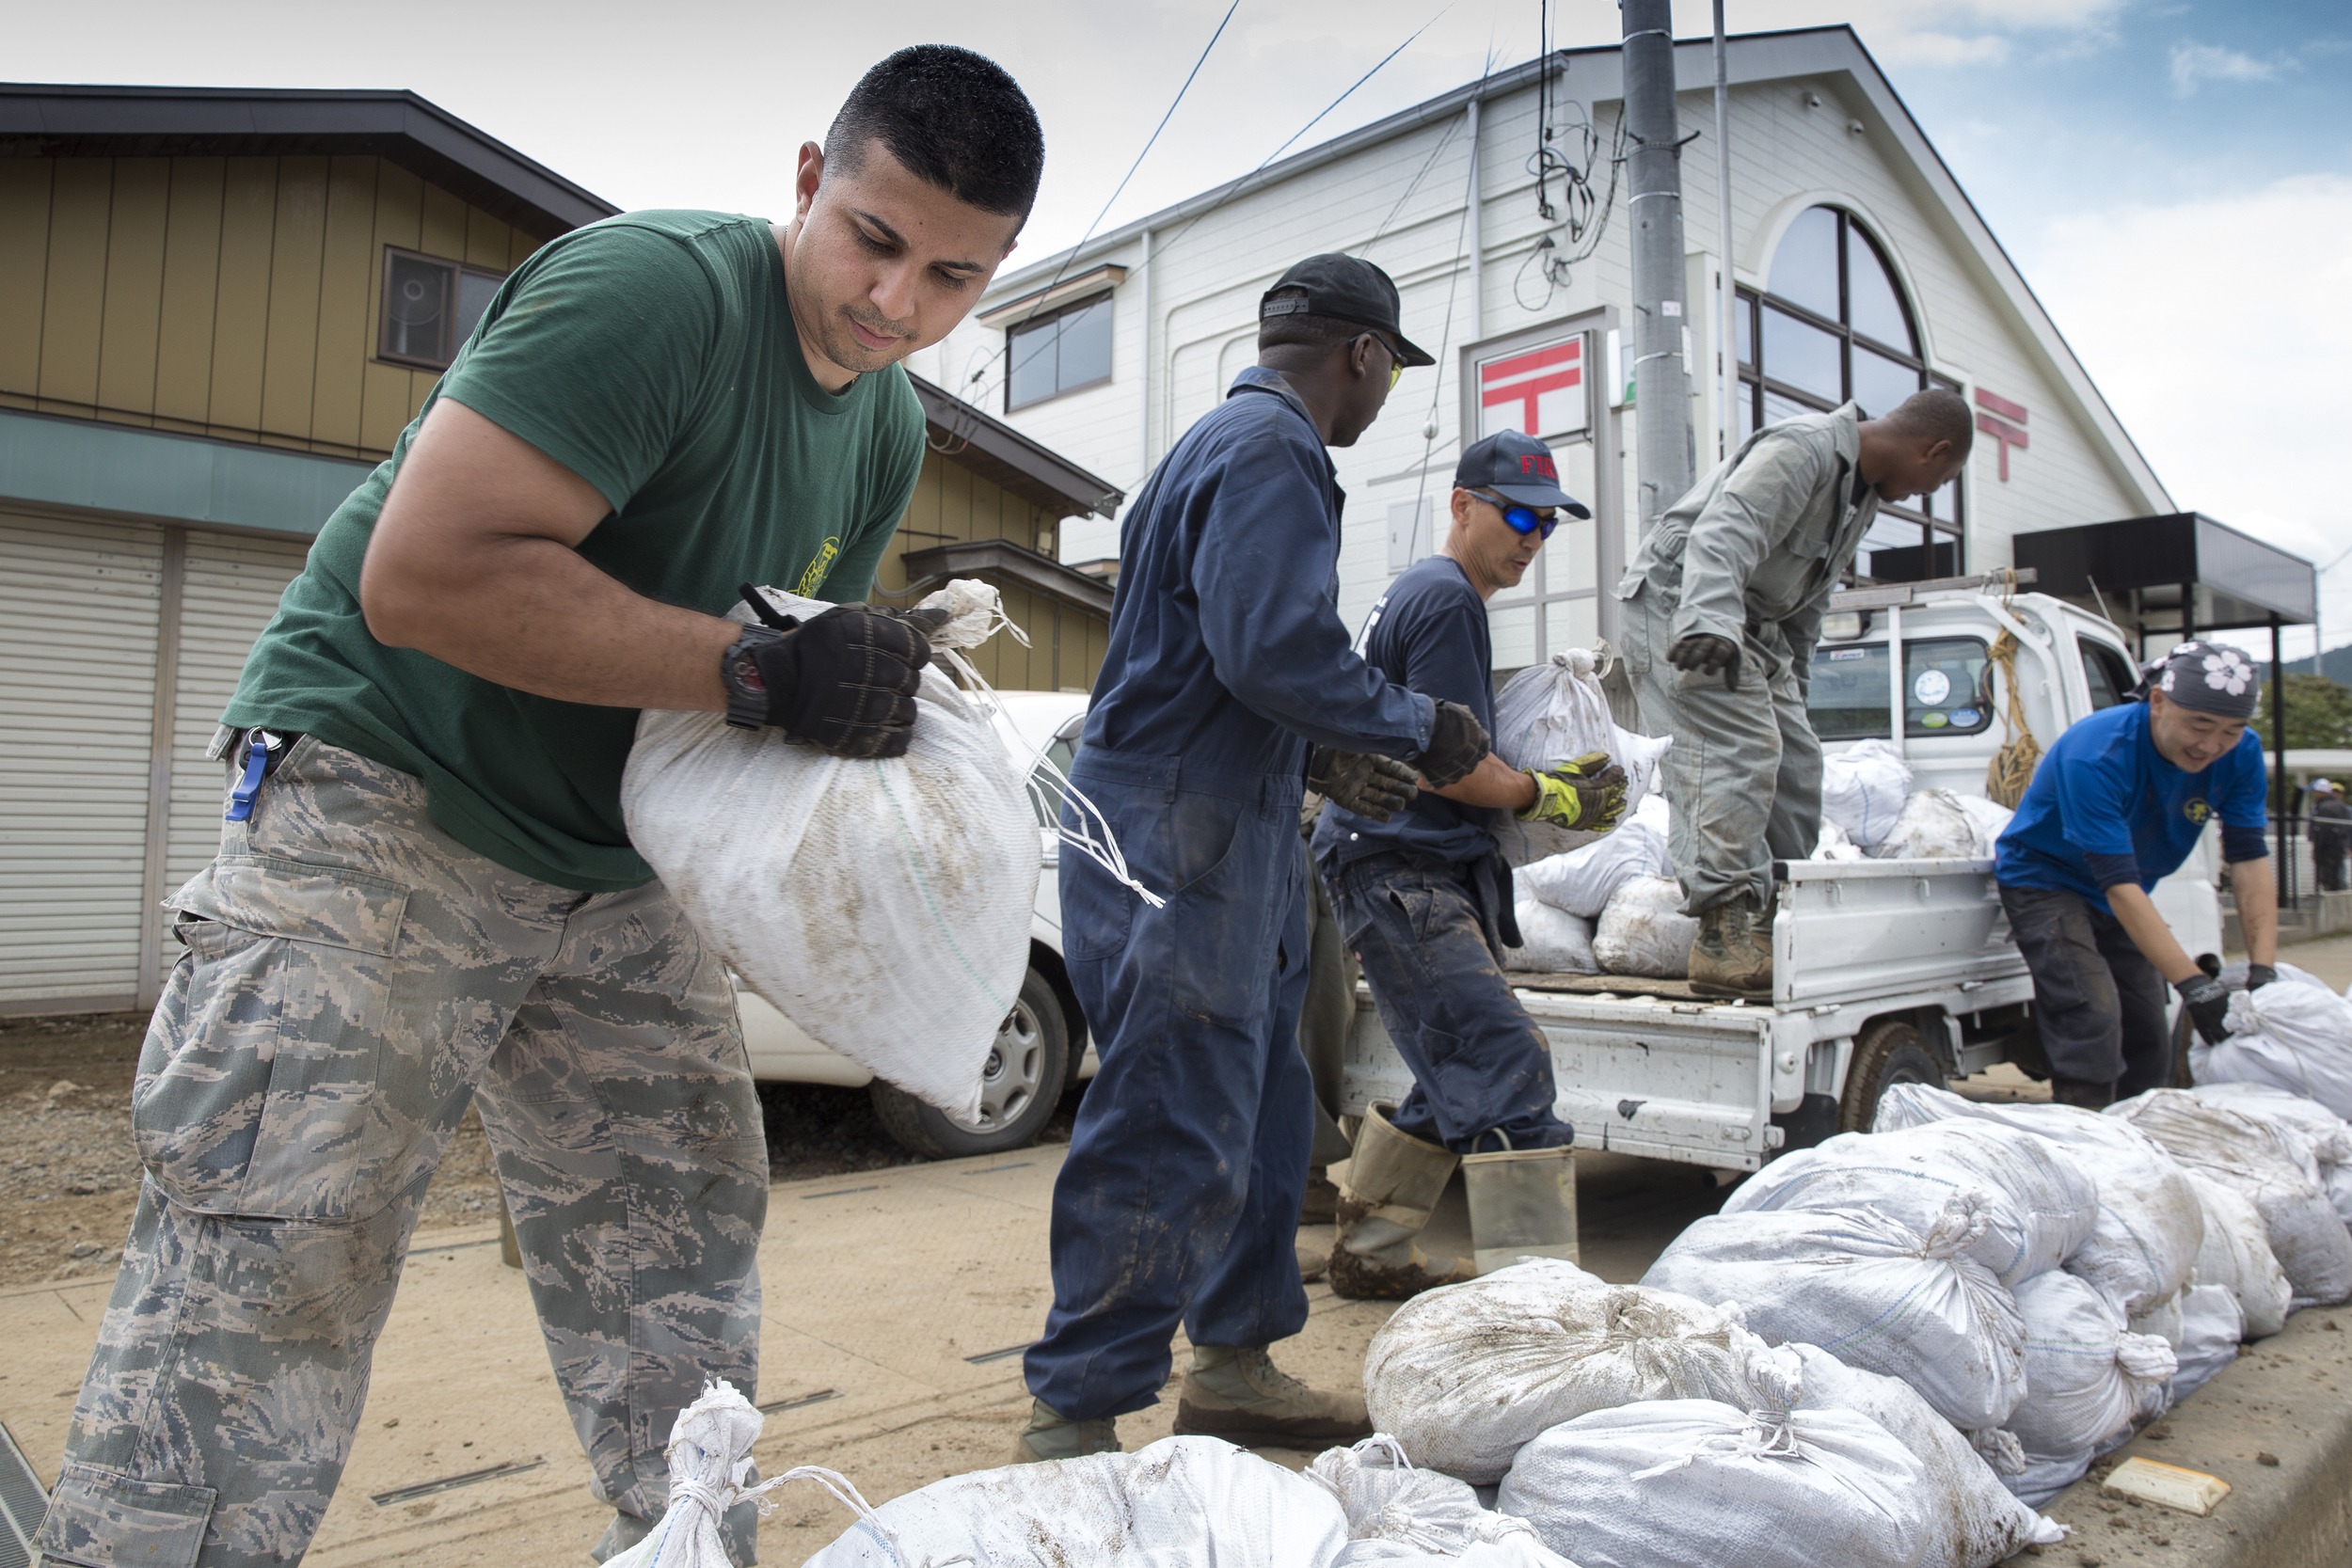 Volunteers from the 374th Civil Engineer Squadron establish an assembly line to download bags full of mud from a transport truck at Kanuma City, Tochigi Prefecture, Japan, Sept. 15, 2015. Sixty Airmen and civilians from the 374th CES volunteered to help at sites in the Kasono area in support of floods and landslides caused by the heavy rainfall associated with the post-tropical remnant of Tropical Storm Etau, which stalled over eastern Japan, dumping up to 17 inches of rain in 24 hours, from Sept. 10 to Sept. 11. (U.S. Air Force photo by Osakabe Yasuo/Released)